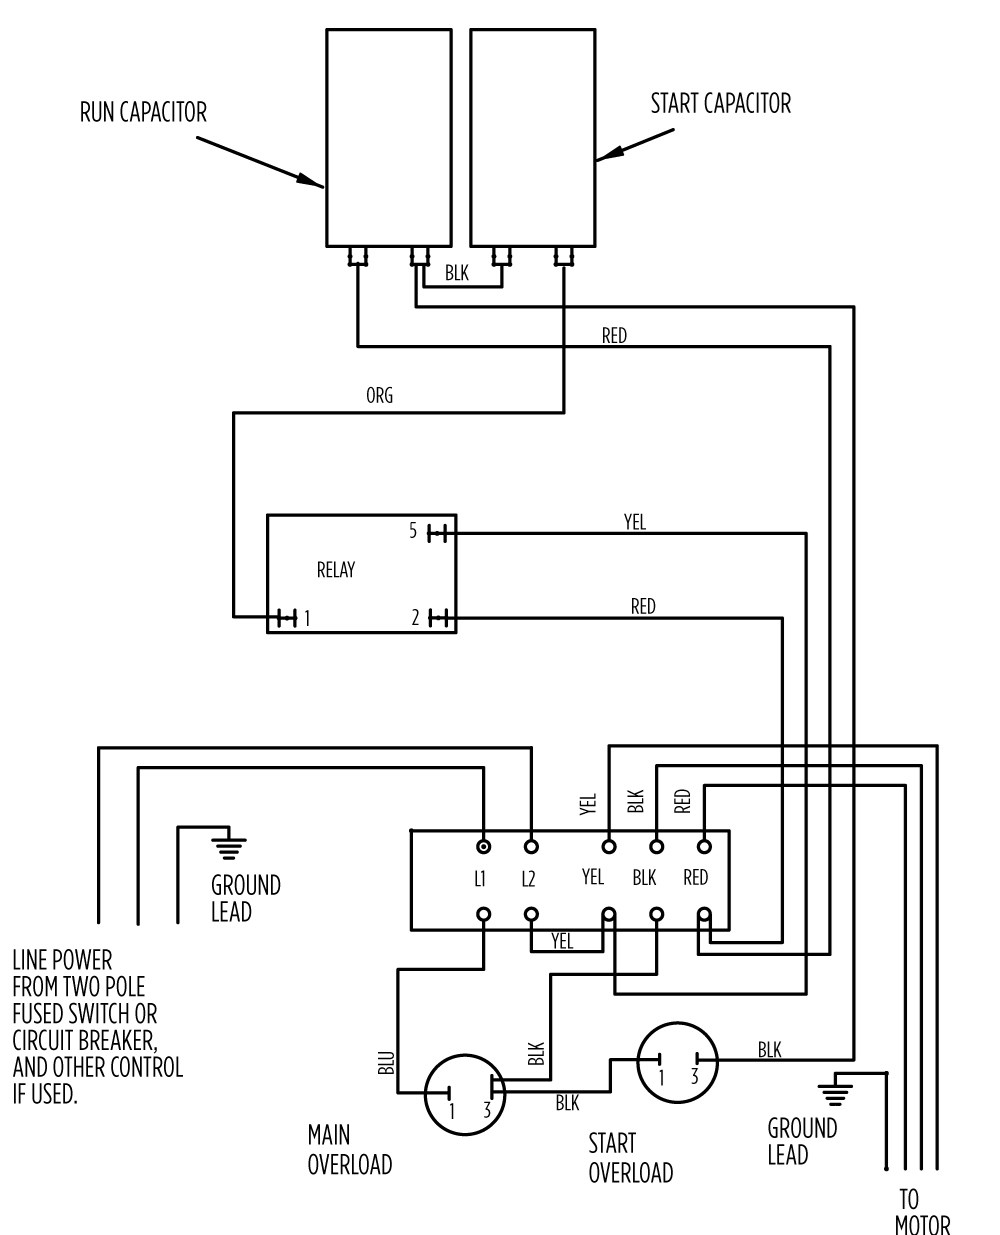 well wiring diagrams 2 17 jaun bergbahnen de \u2022 Home Electrical Service aim manual page 55 single phase motors and controls motor rh franklinwater com well pump electrical wiring diagrams well pressure switch wiring diagram